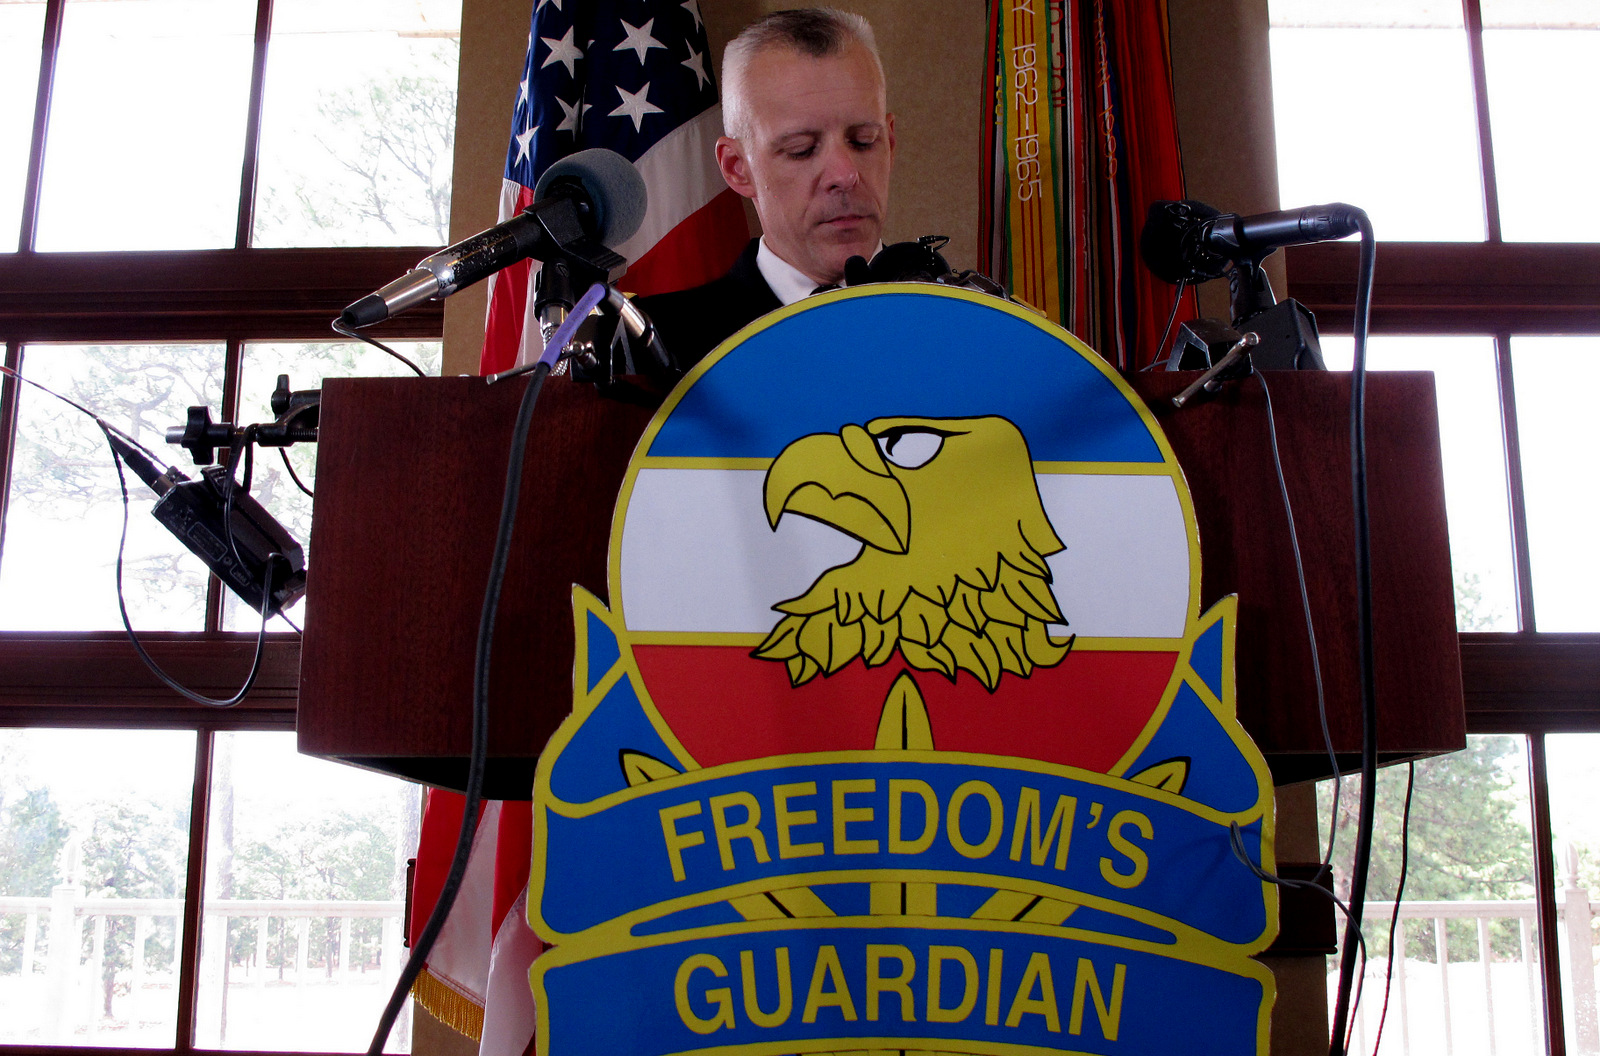 U.S. Army Col. Daniel King addresses the news media about charges against Army Sgt. Bowe Bergdahl at Fort Bragg, N.C., on Wednesday, March 25, 2015. Bergdahl, who abandoned his post in Afghanistan and was held captive for five years by the Taliban, was charged Wednesday by the U.S. military with desertion and misbehavior before the enemy and could get life in prison if convicted. (AP Photo/Allen G. Breed)